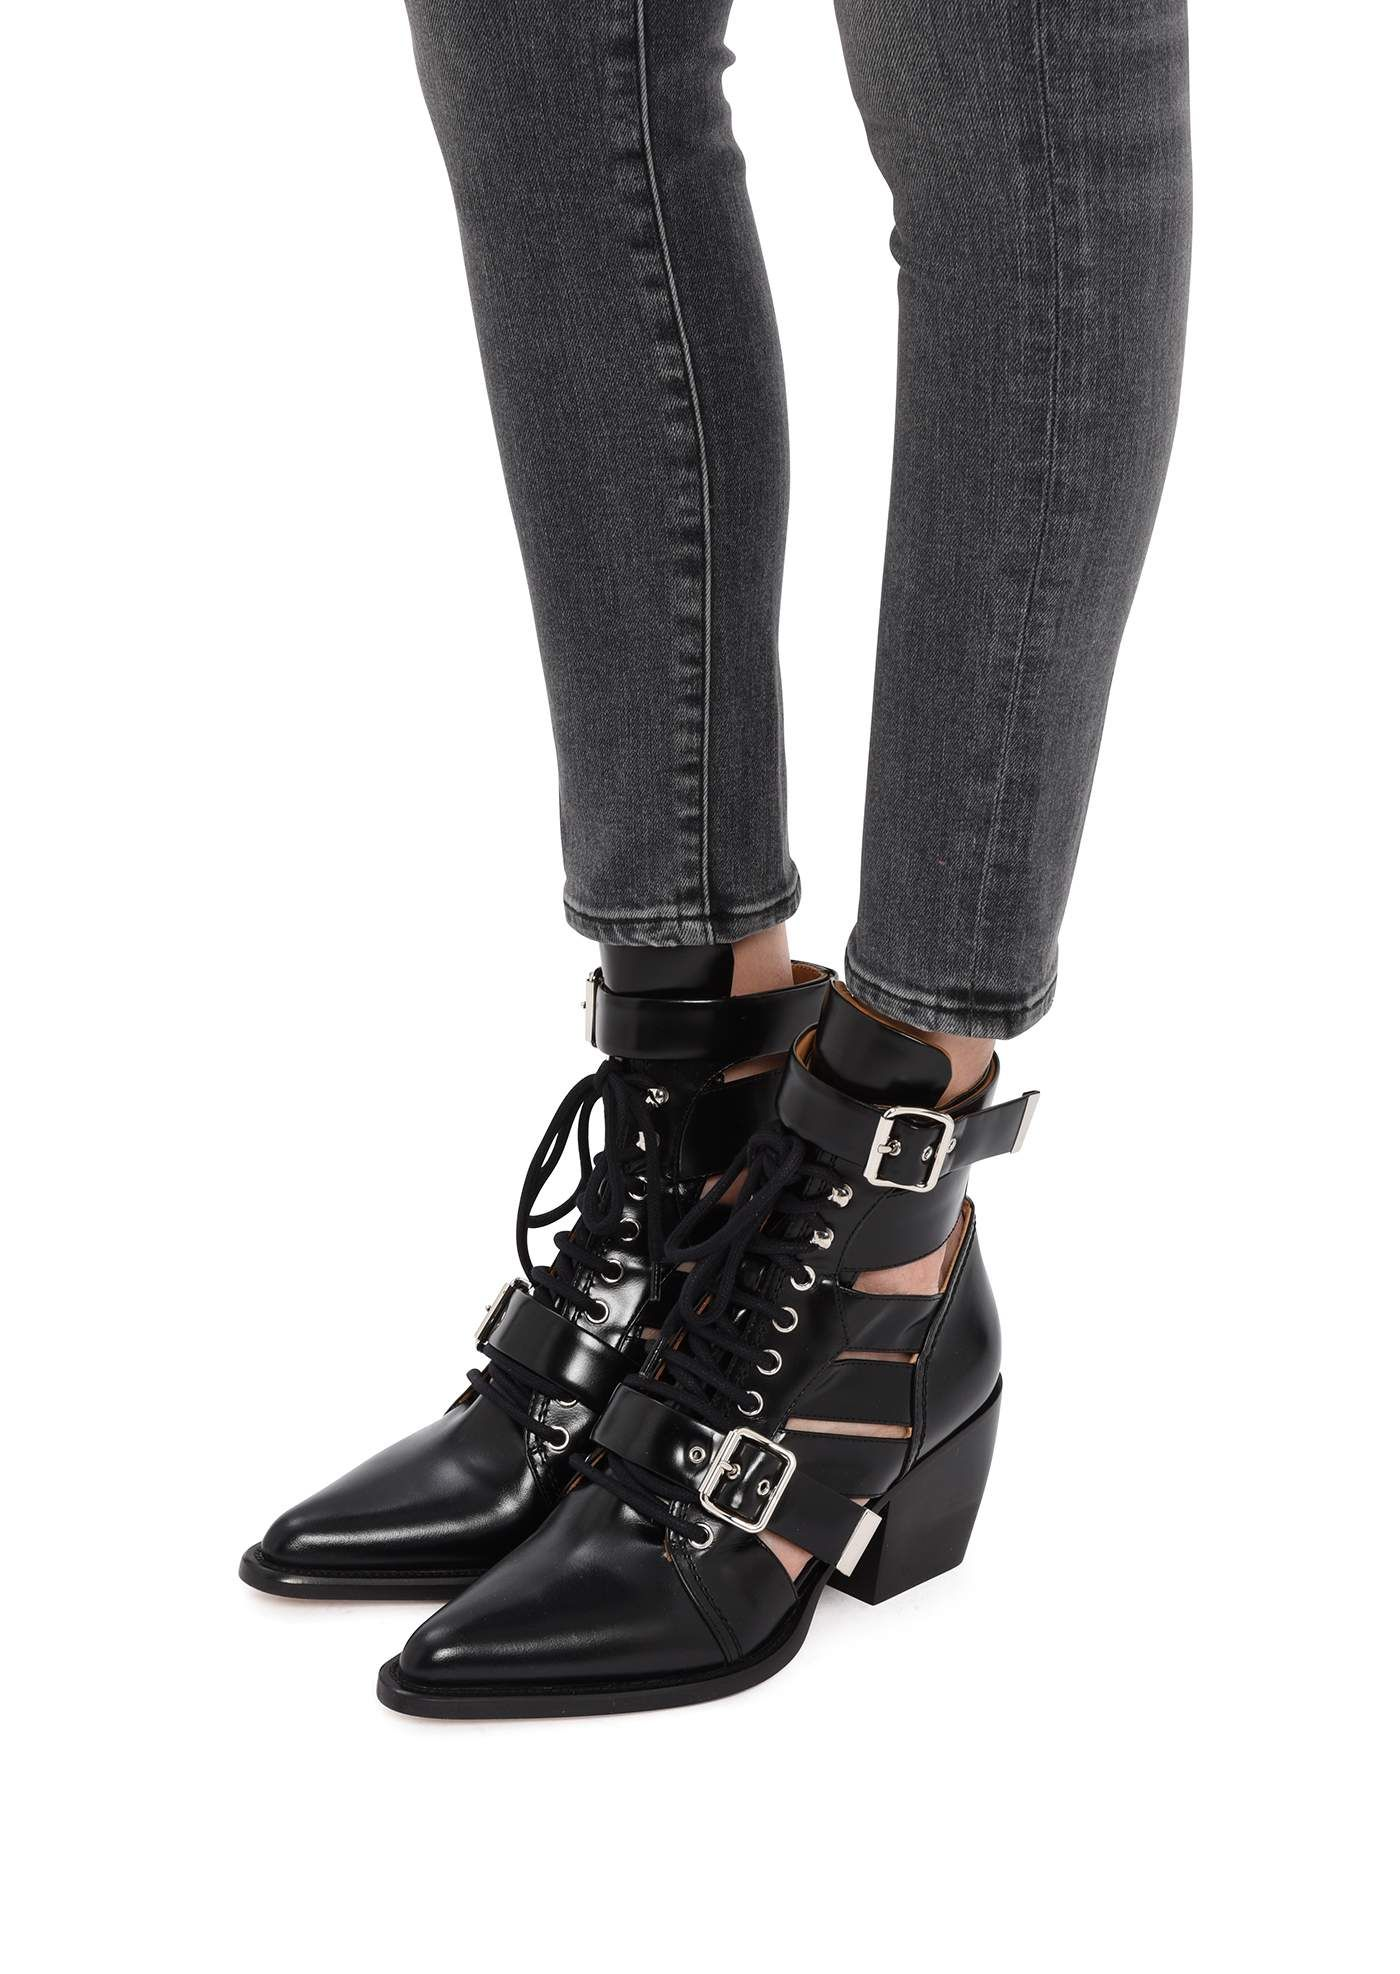 5d39555847 Chloé Ankle boots :: Chloé Rylee ankle boots in shiny black calfskin |  Montaigne Market